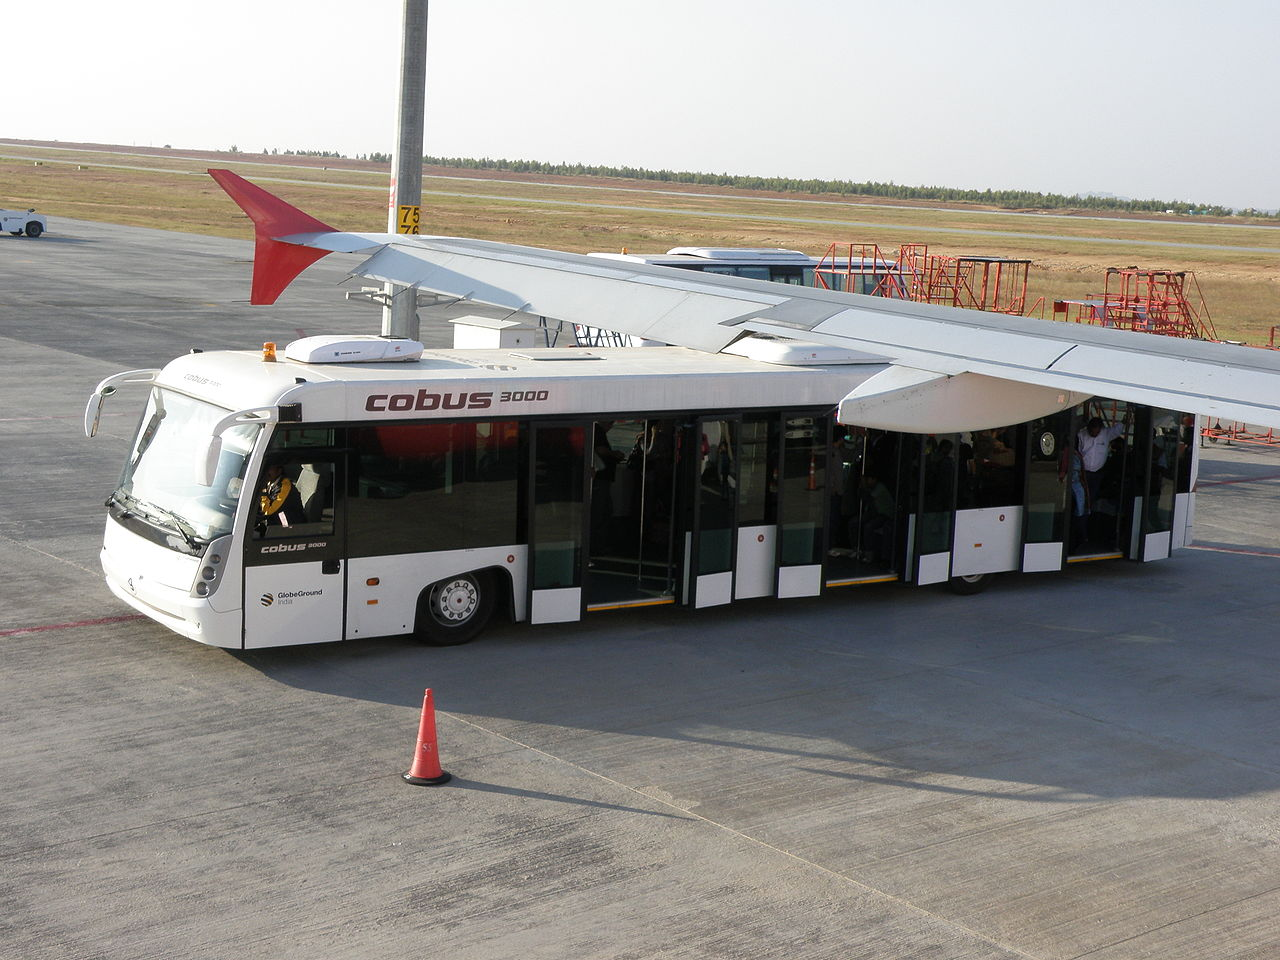 File:Cobus 3000 at Bengaluru International Airport.JPG - Wikimedia ...